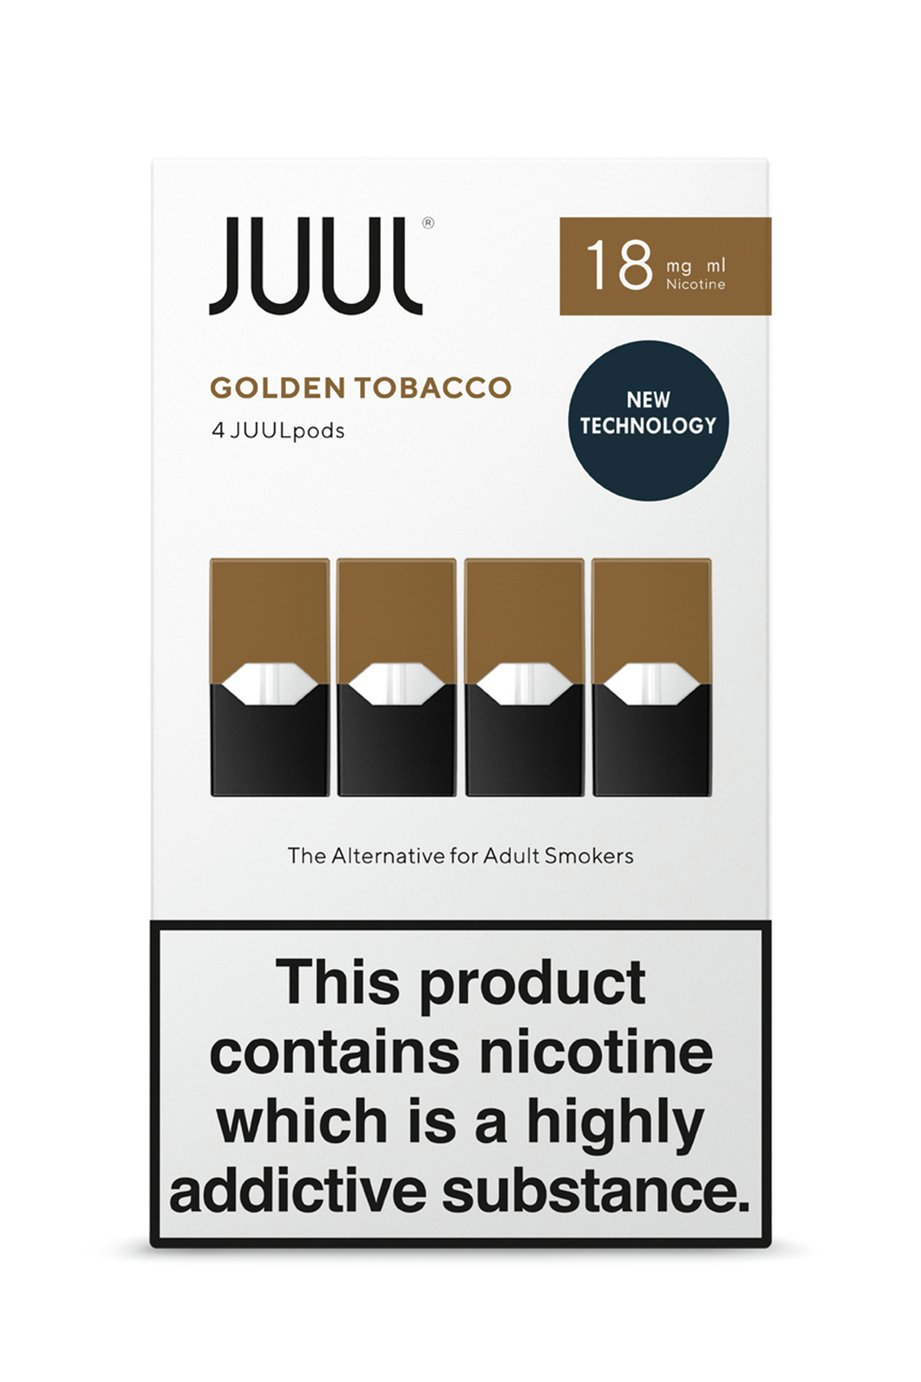 JUUL Golden Tobacco PODs 18mg